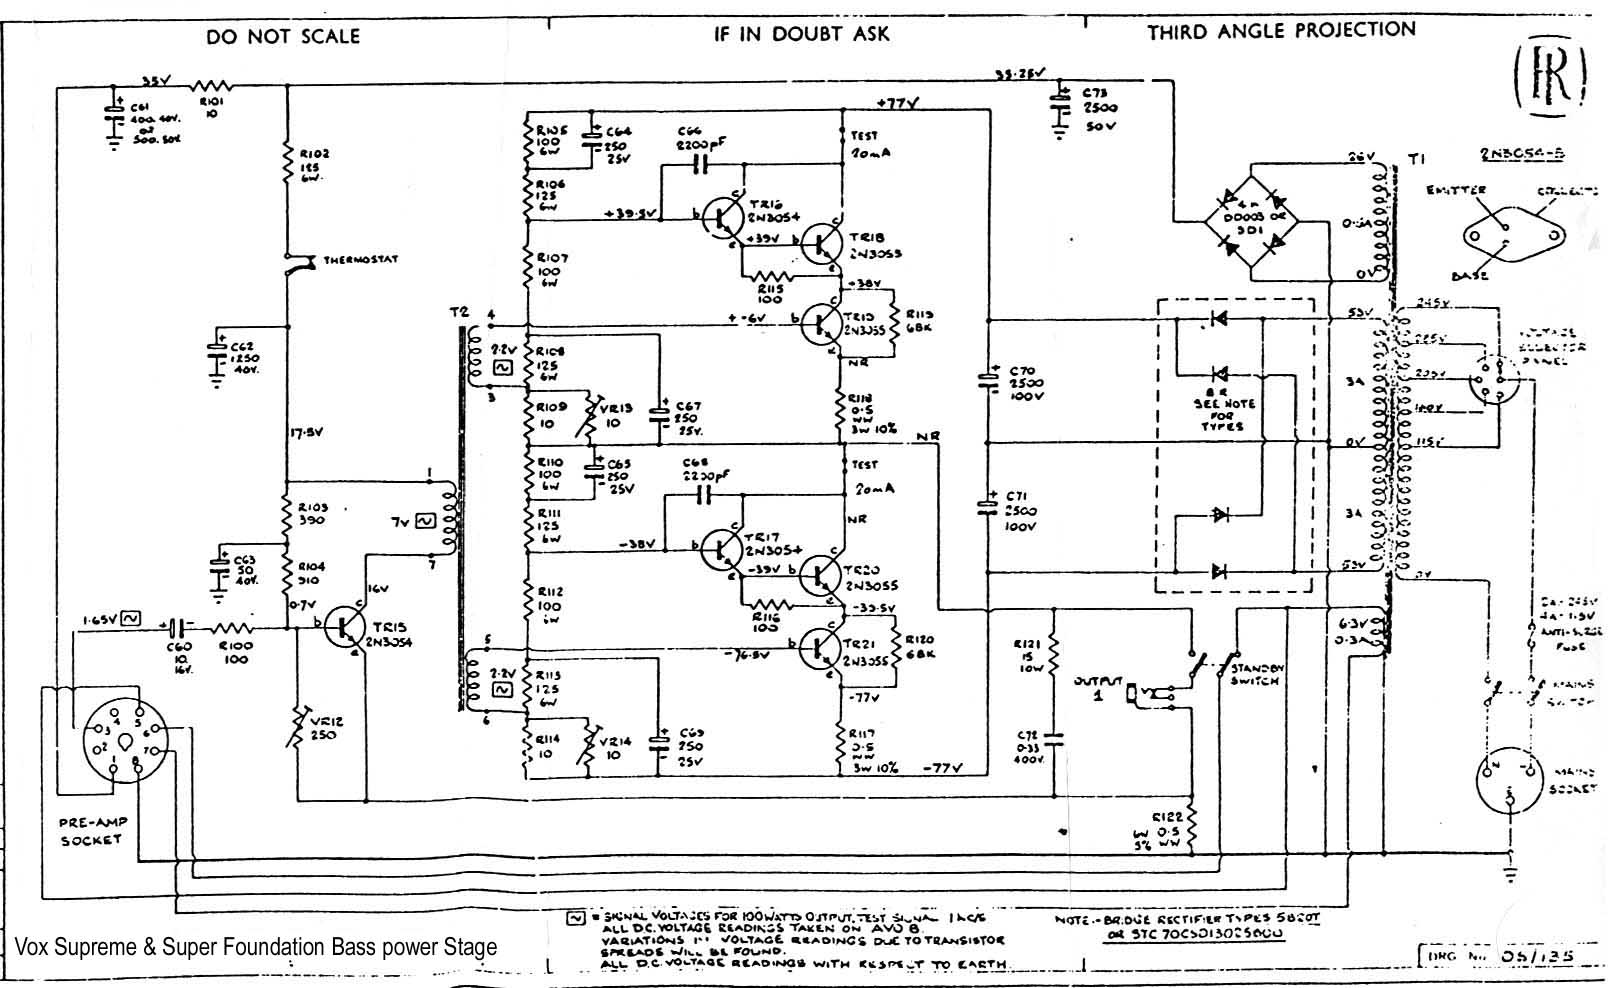 vox vintage circuit diagrams supreme super foundation bass power amp stage 100 watt 1969 diagram